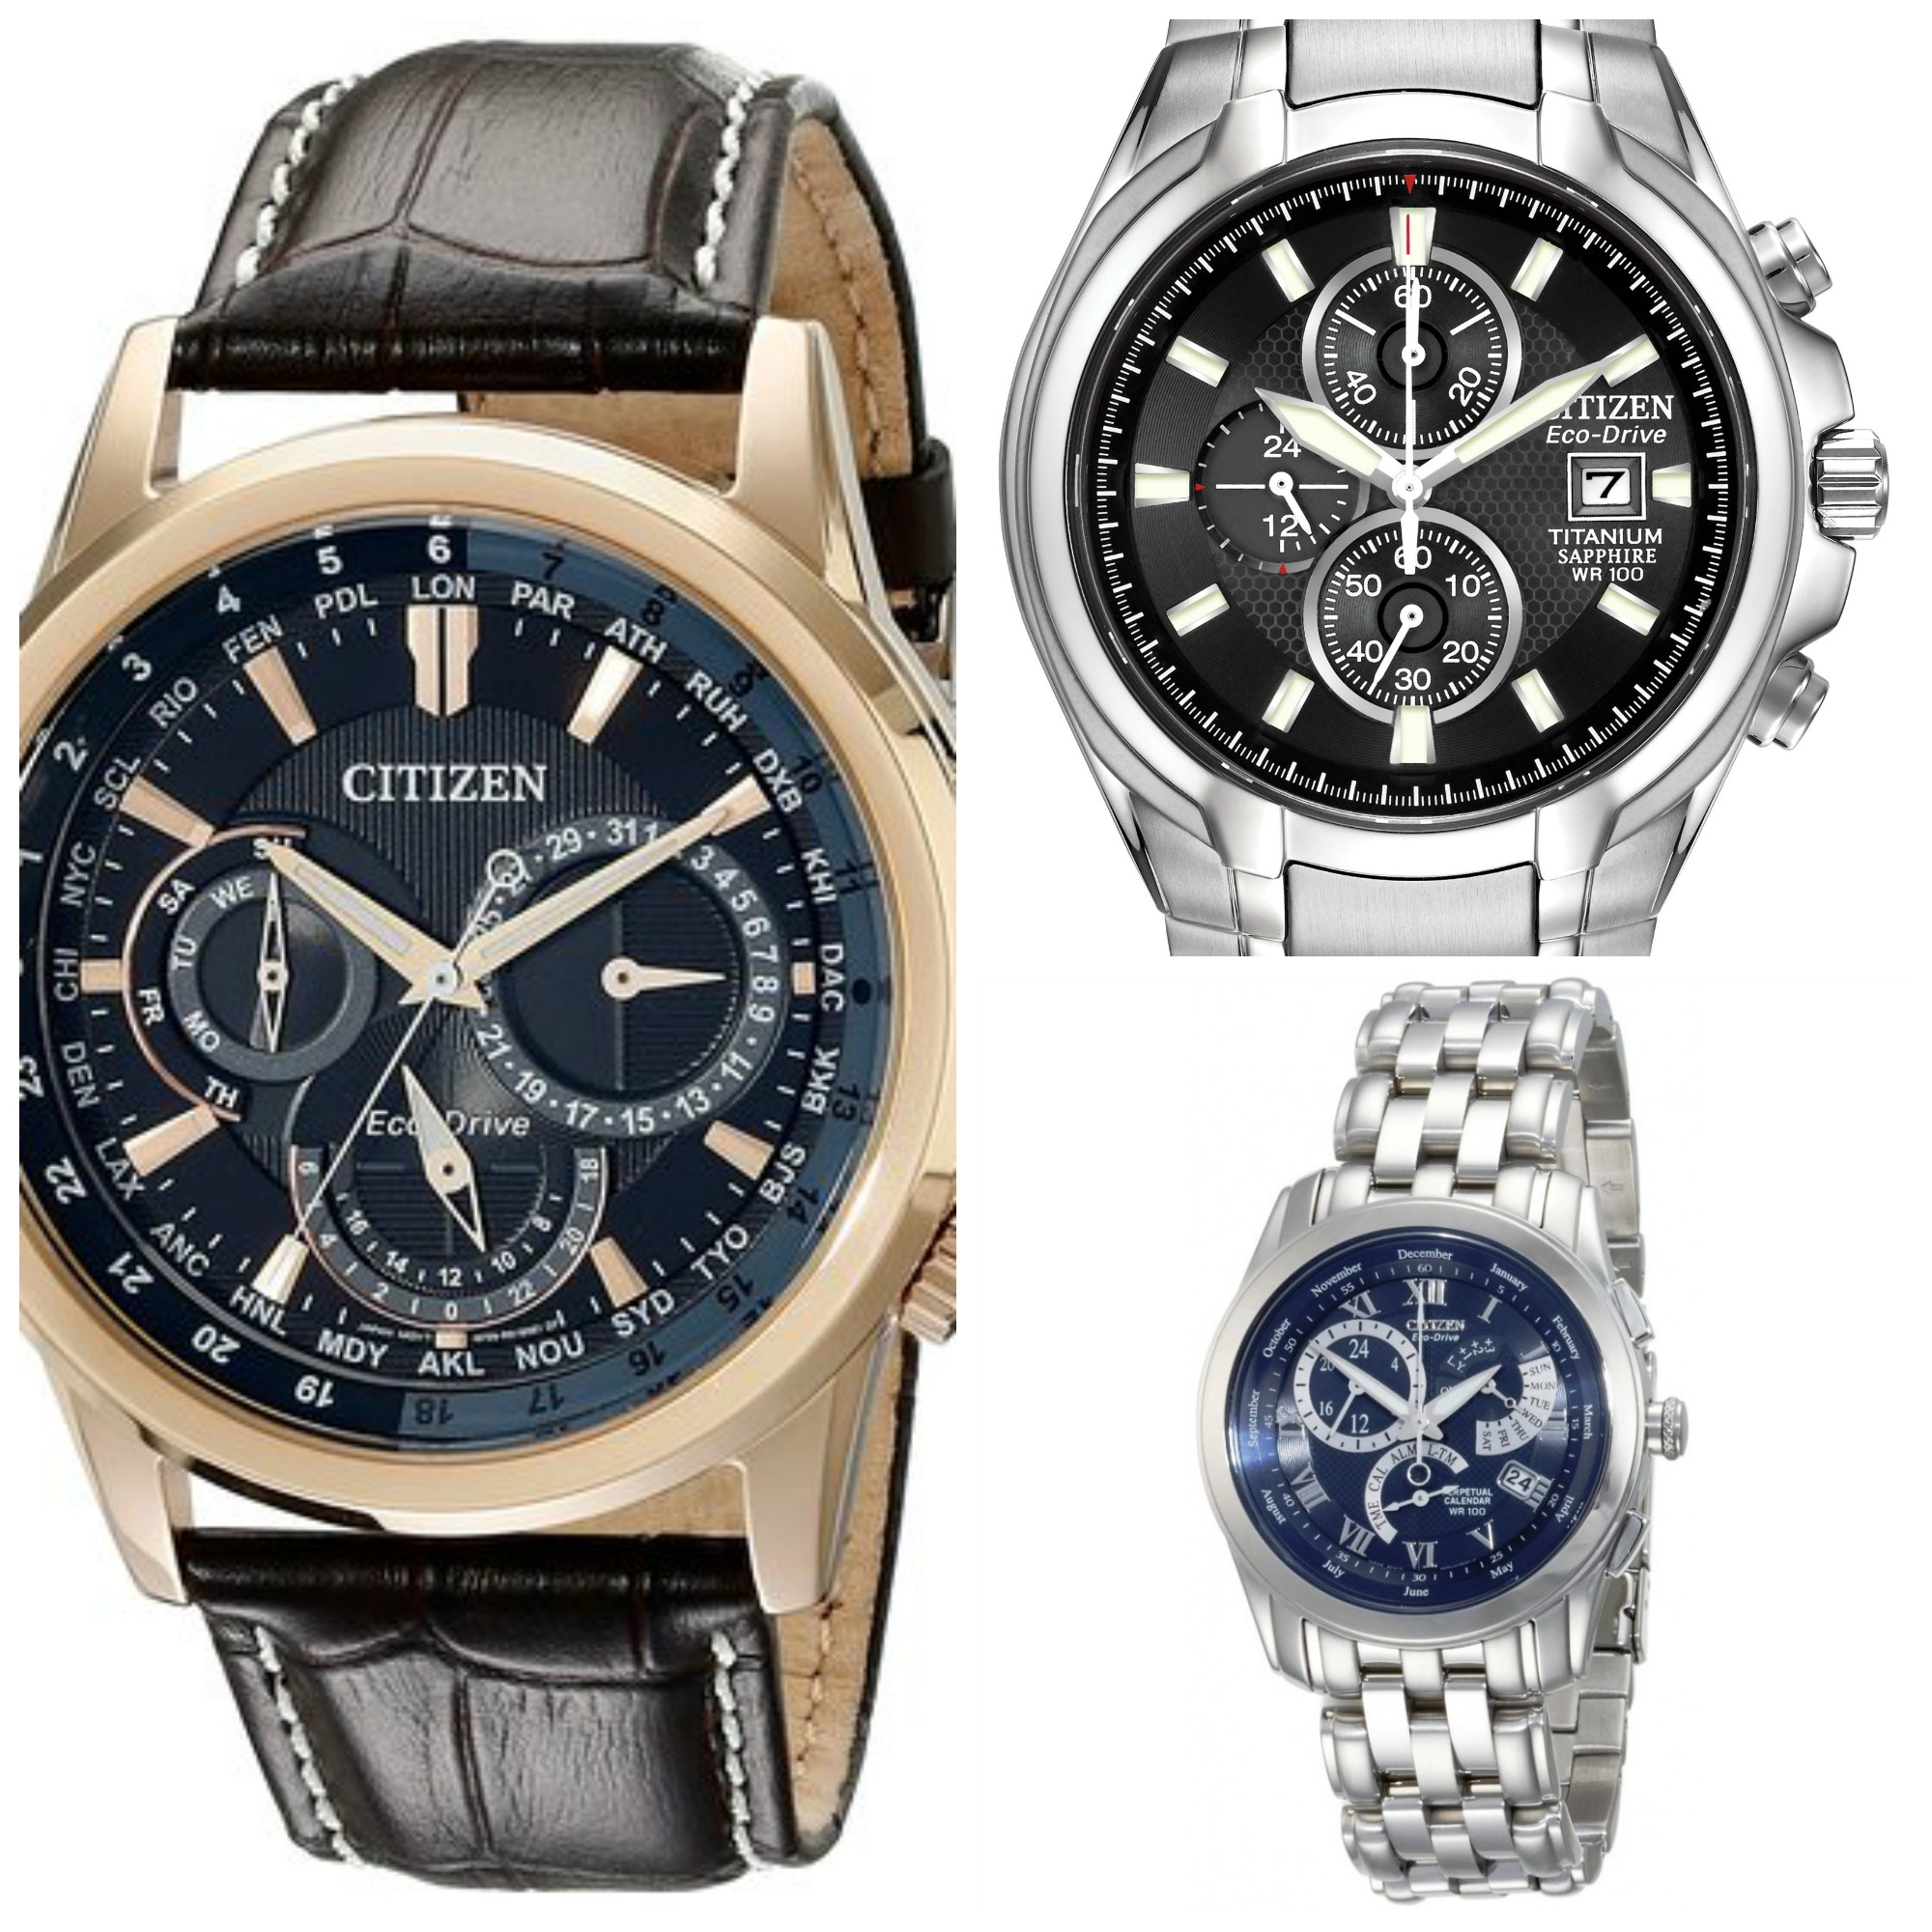 8 most popular best selling citizen eco drive watches